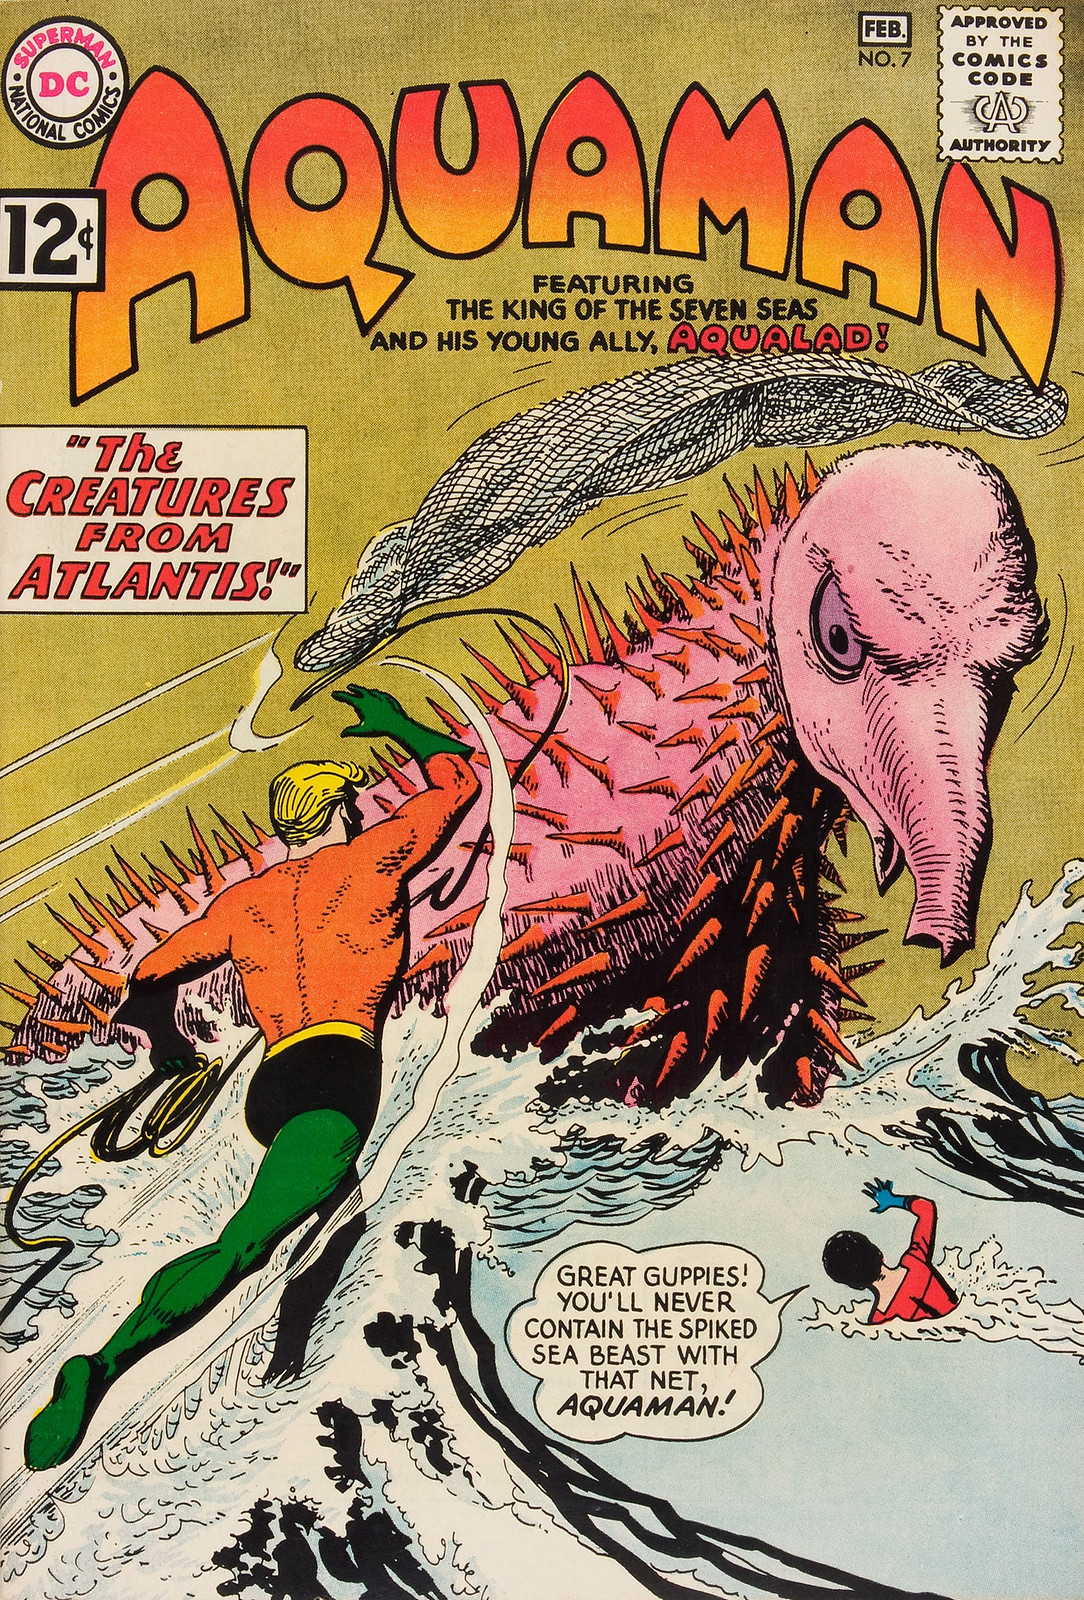 Aquaman #7 (DC, 1963) Nick Cardy Cover